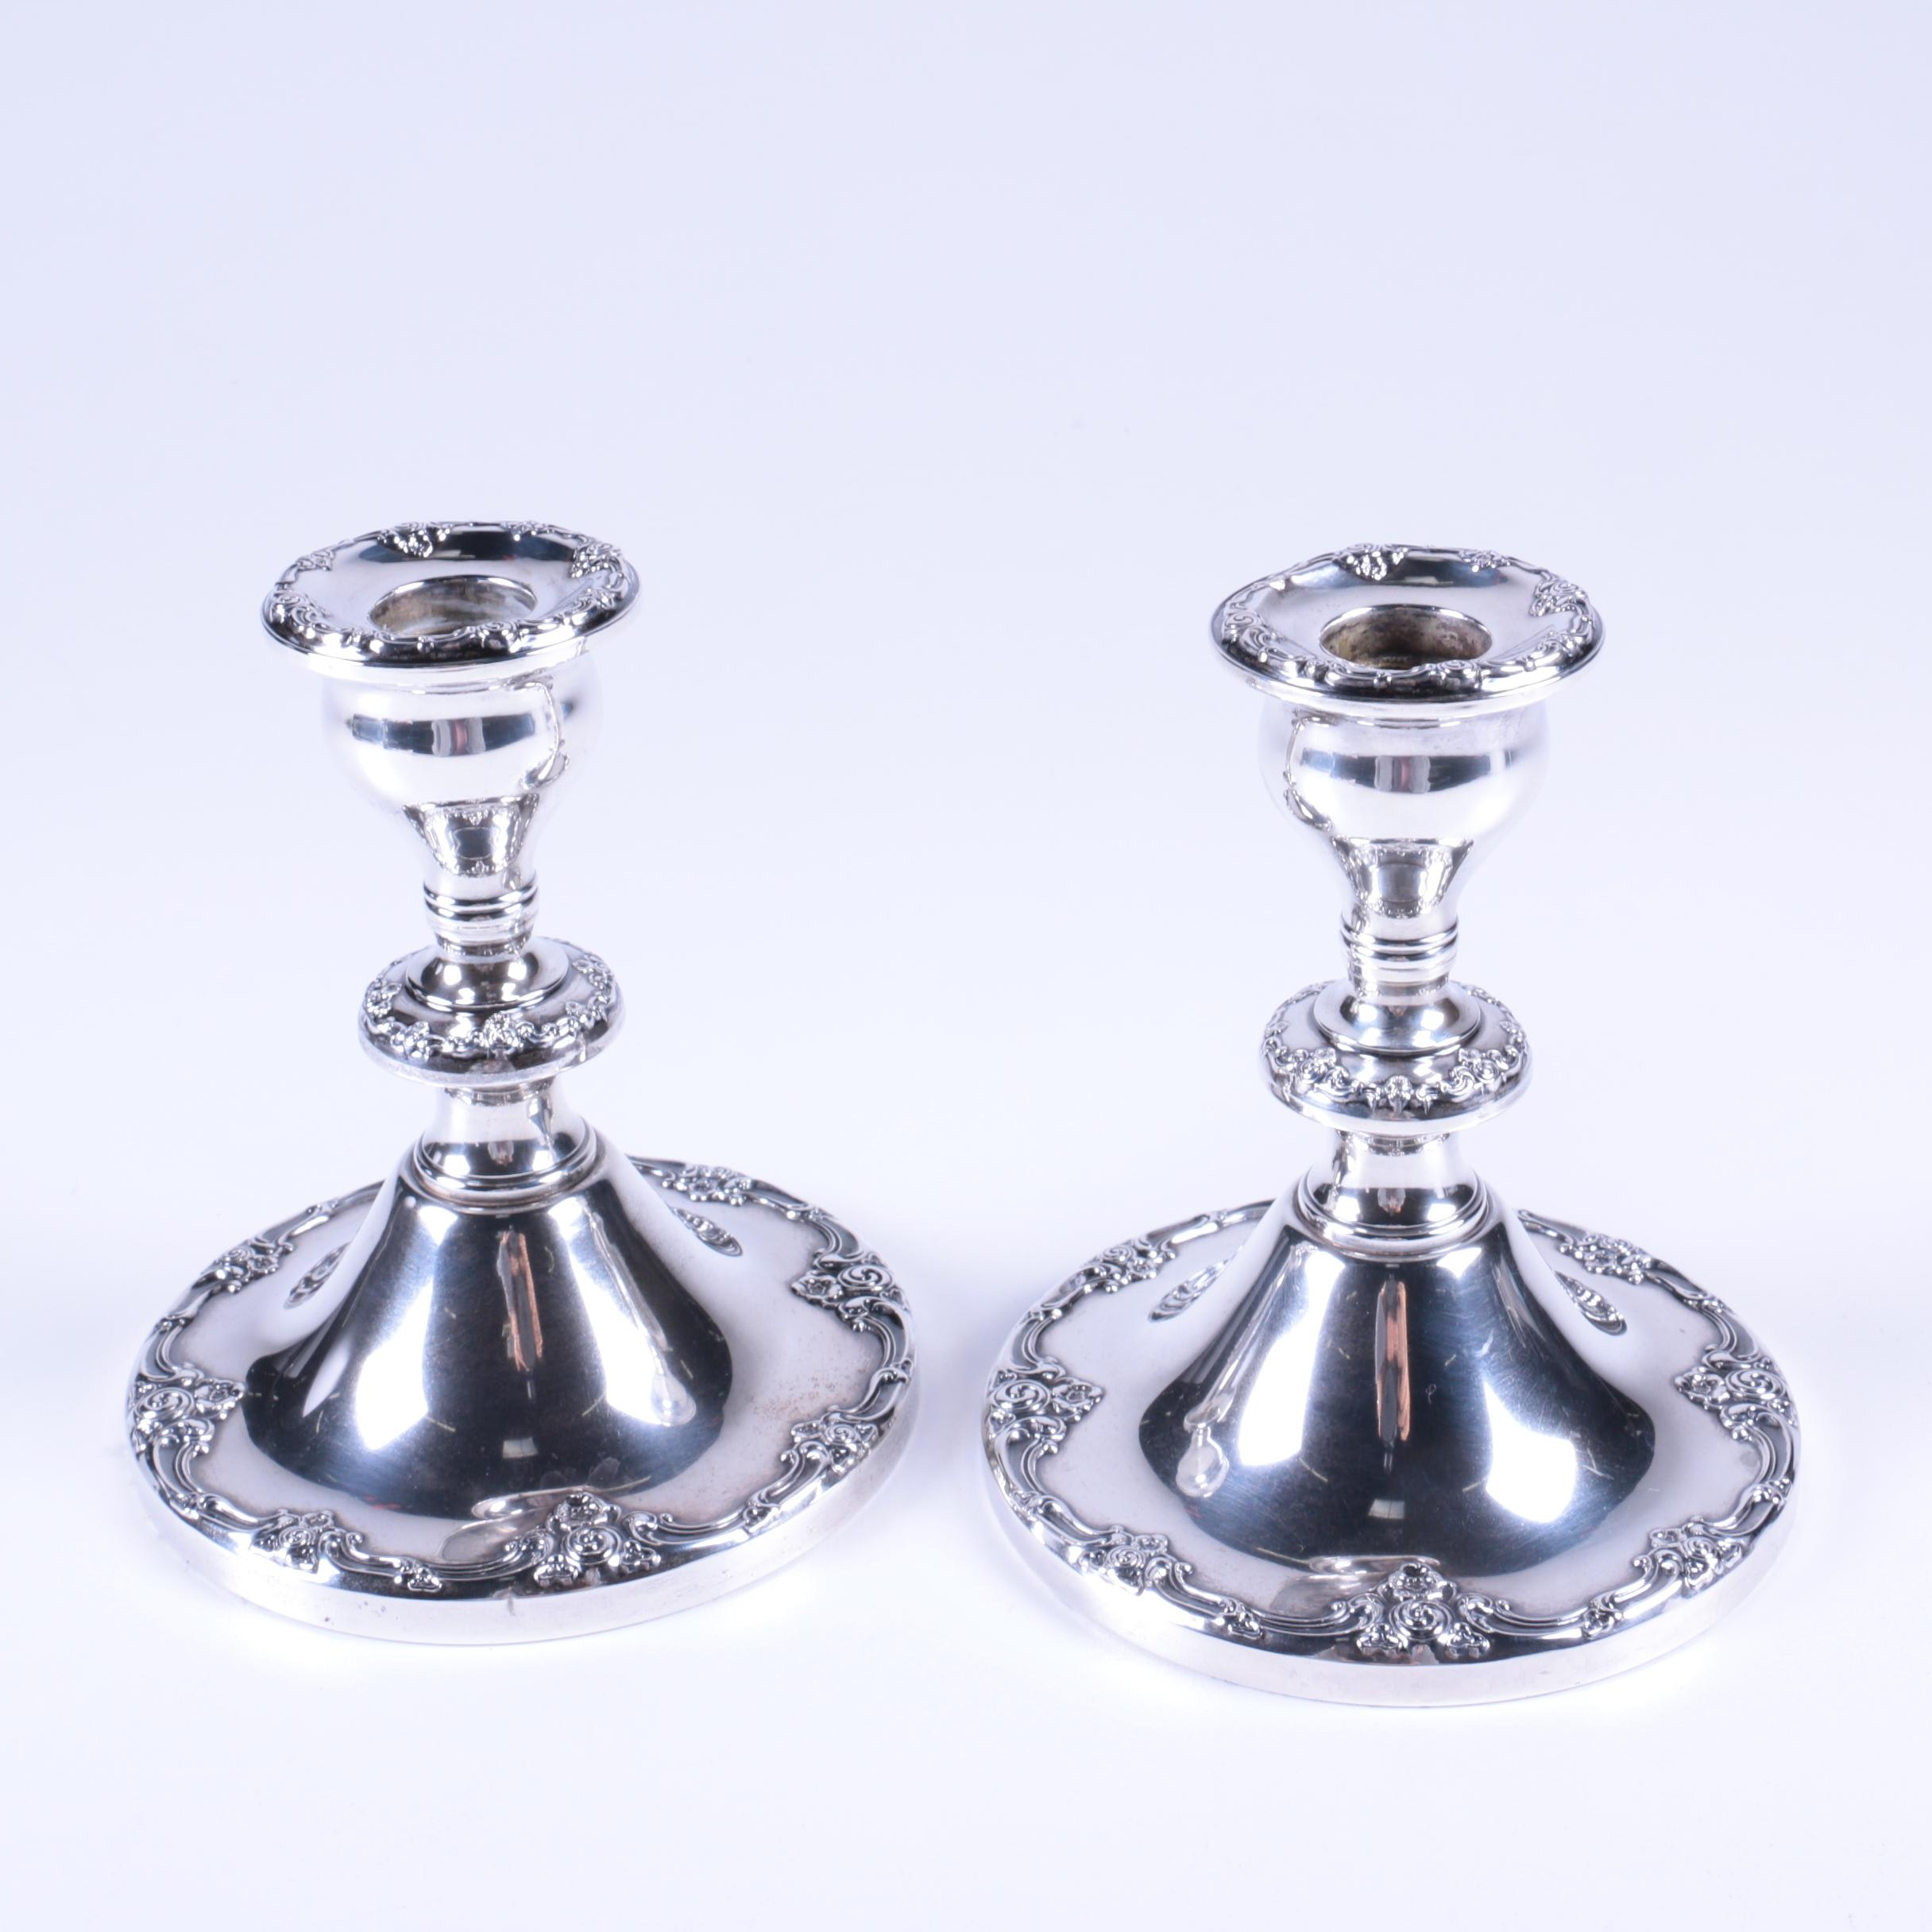 Gorham Weighted Sterling Silver Candlestick Holders